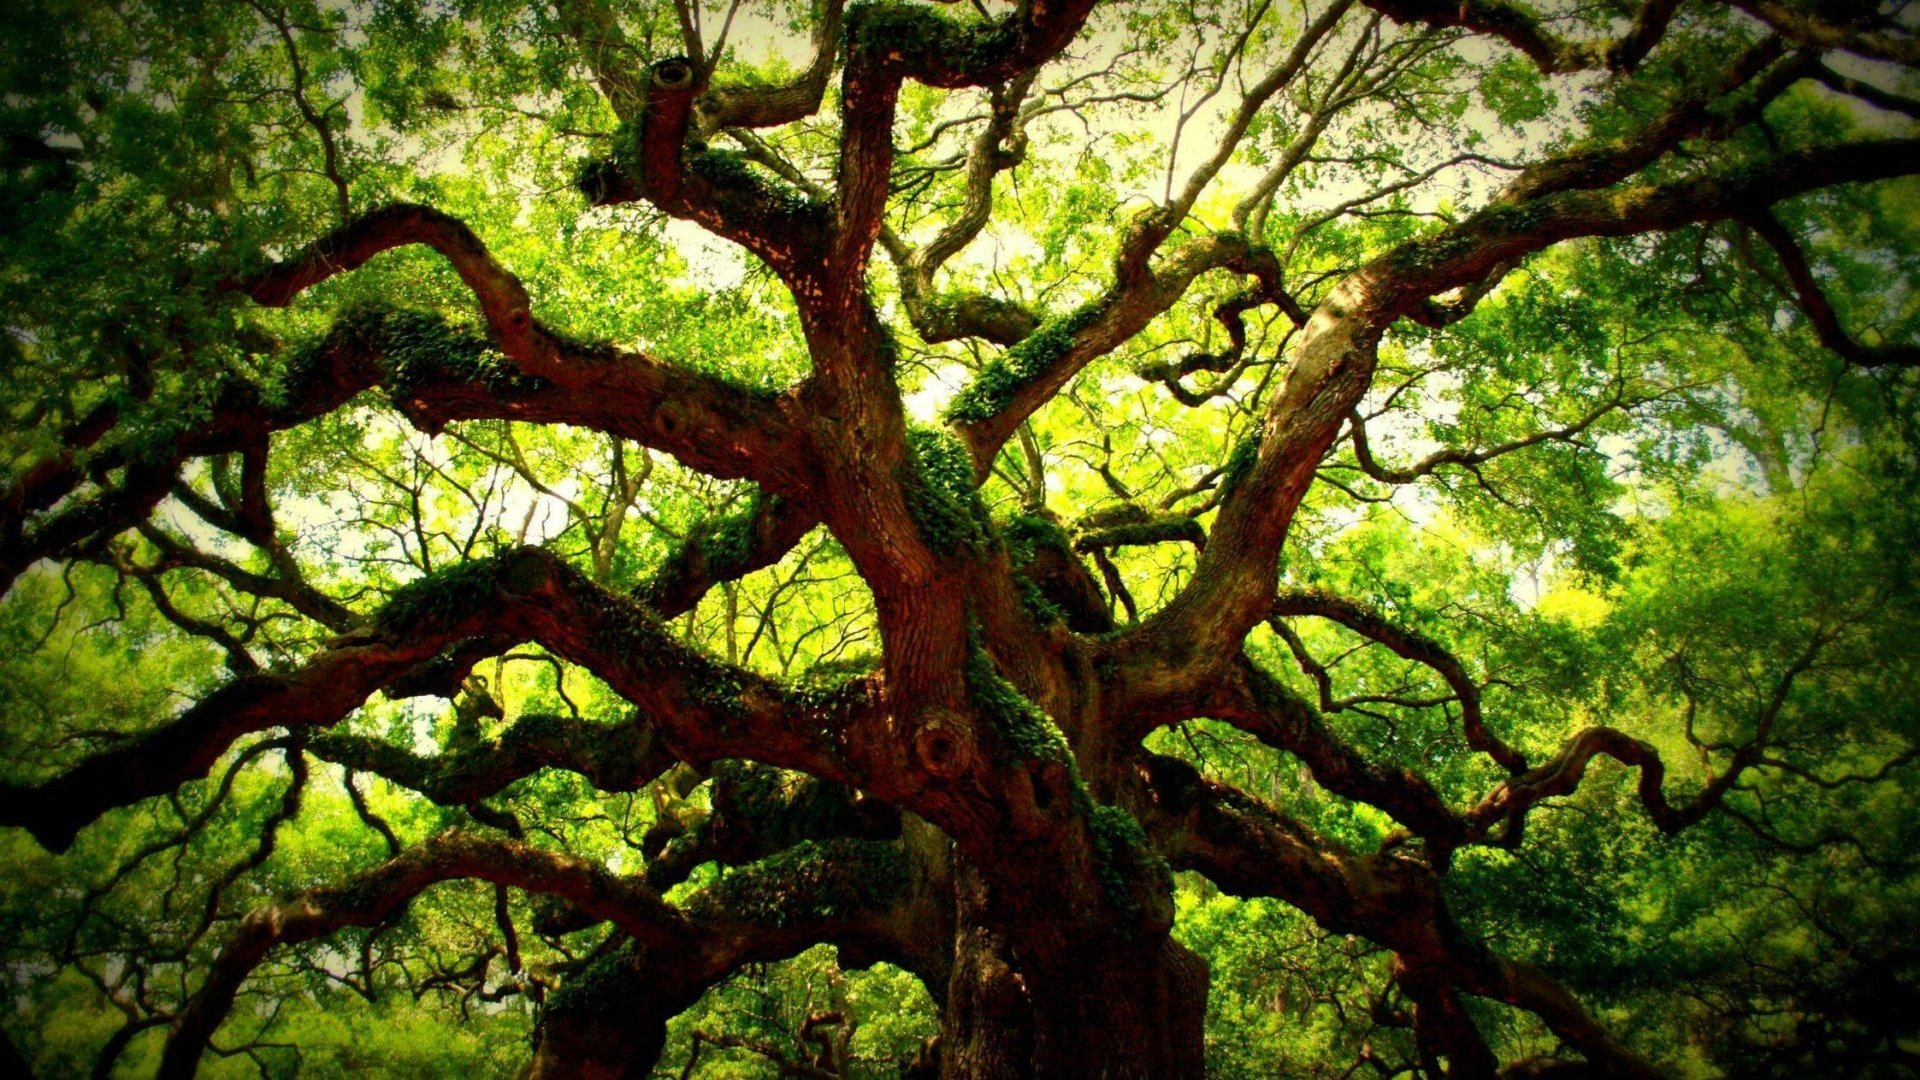 Angel Oak Tree Wallpapers and Background Images   stmednet 1920x1080